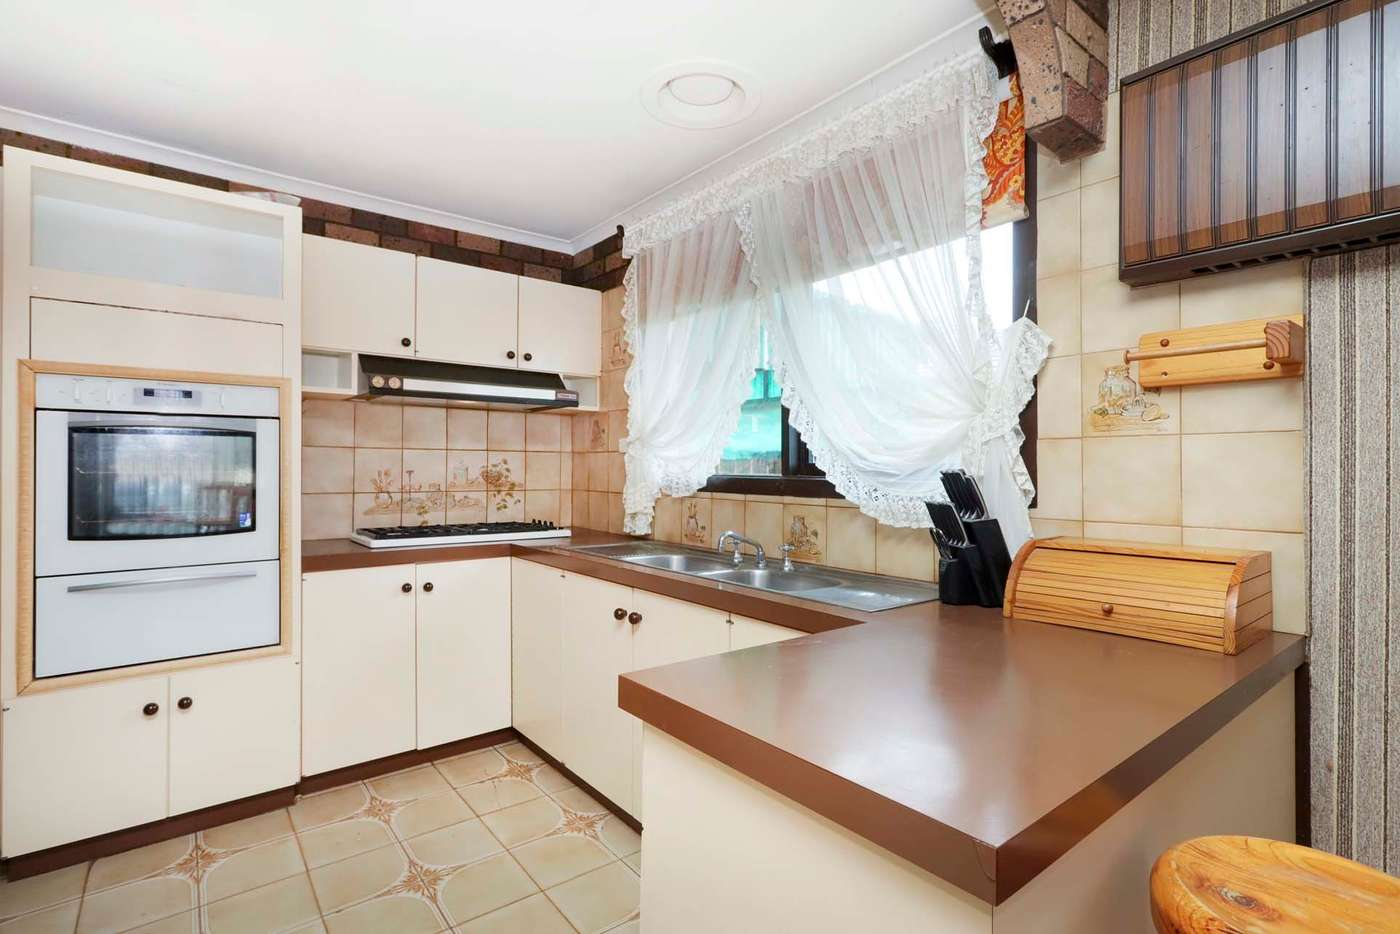 Fifth view of Homely house listing, 2 Empress Court, Sunshine West VIC 3020